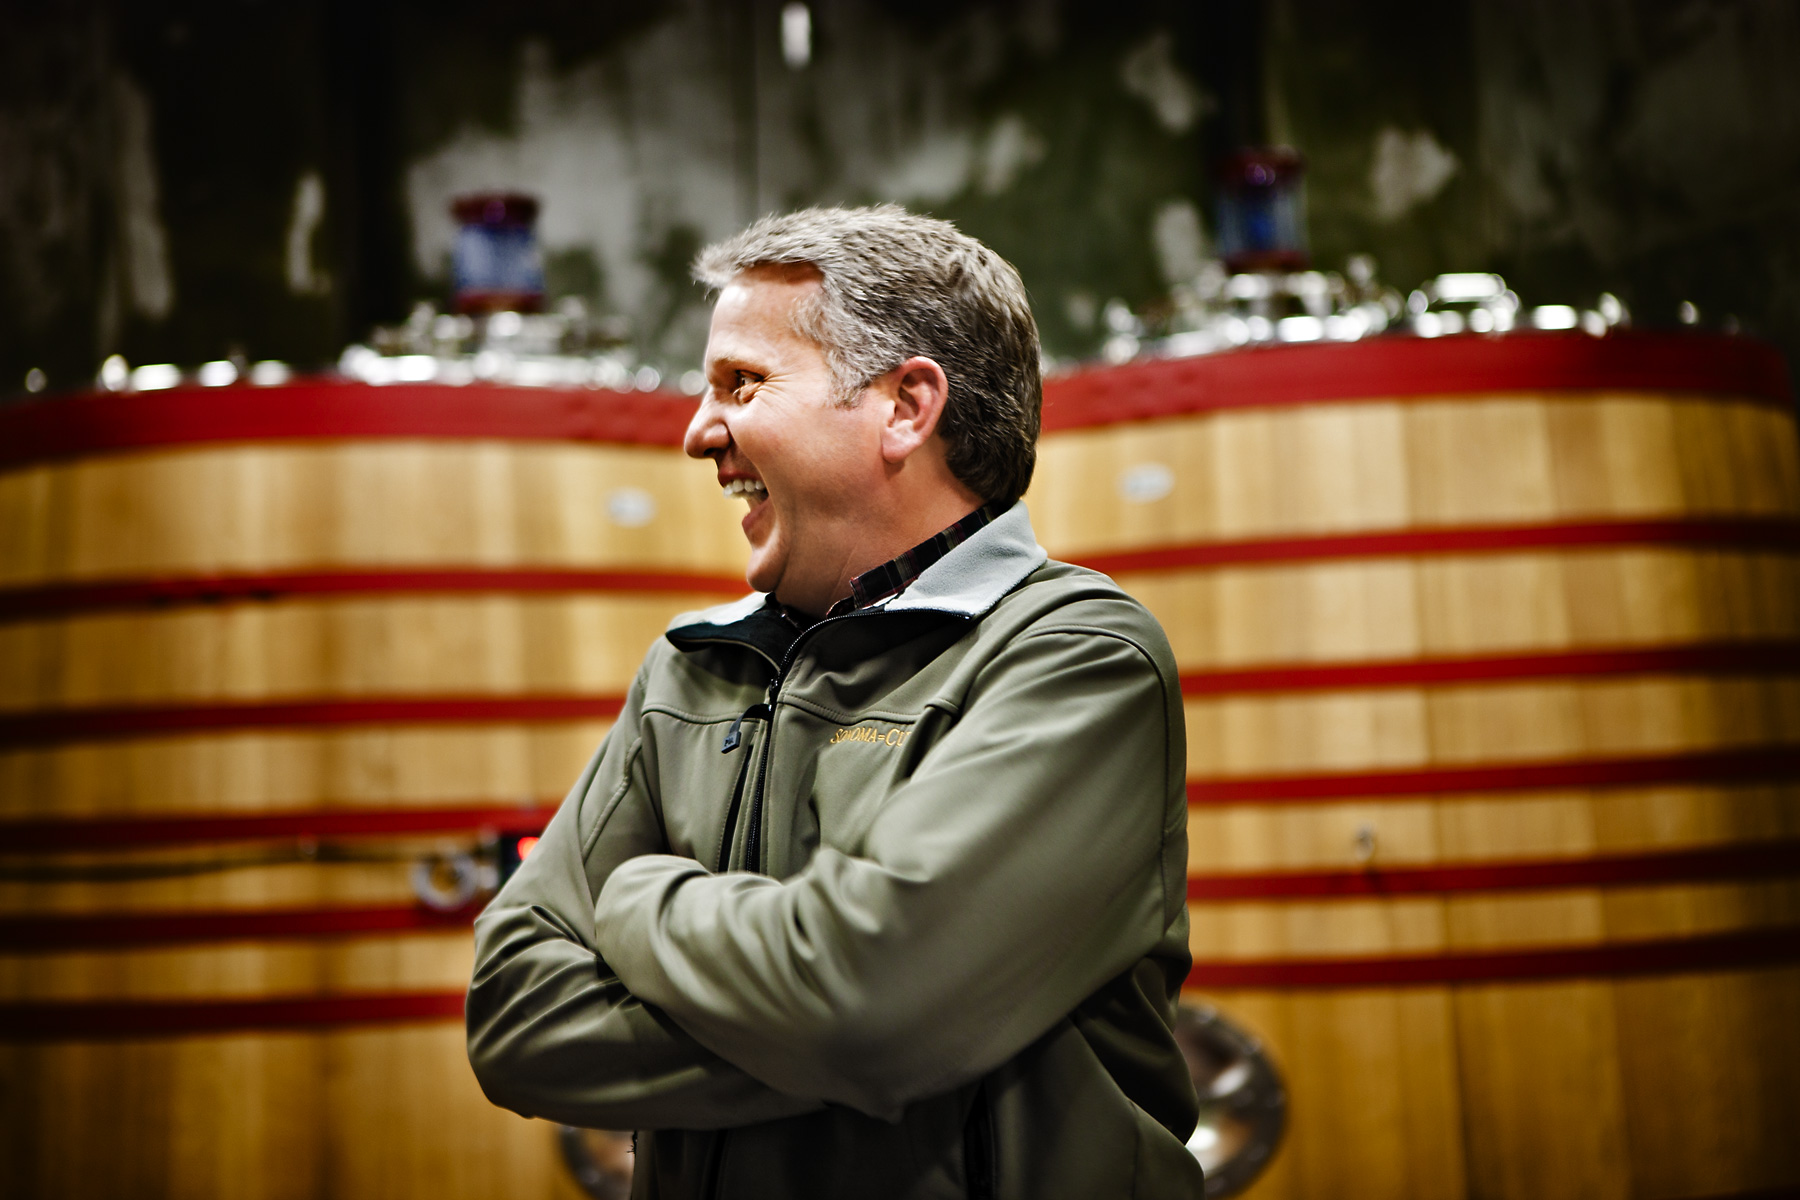 BFSC_barrel_room_portrait_2914